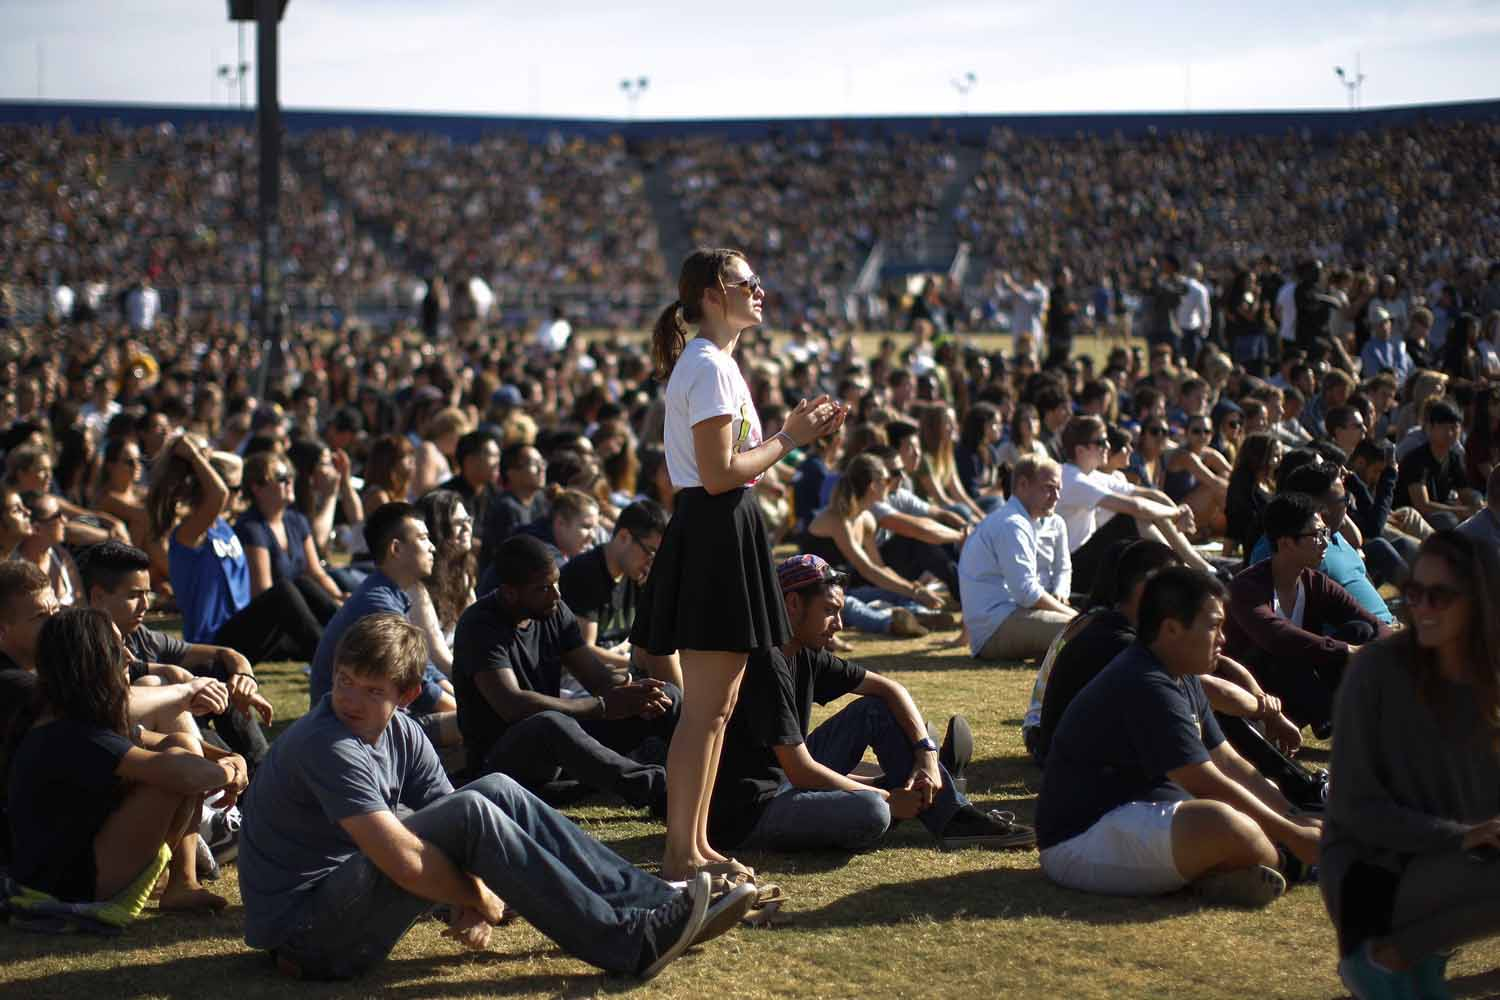 May 27, 2014. Students mourn at a public memorial service on the Day of Mourning and Reflection for the victims of a killing spree at University of California, Santa Barbara  in Isla Vista, California.